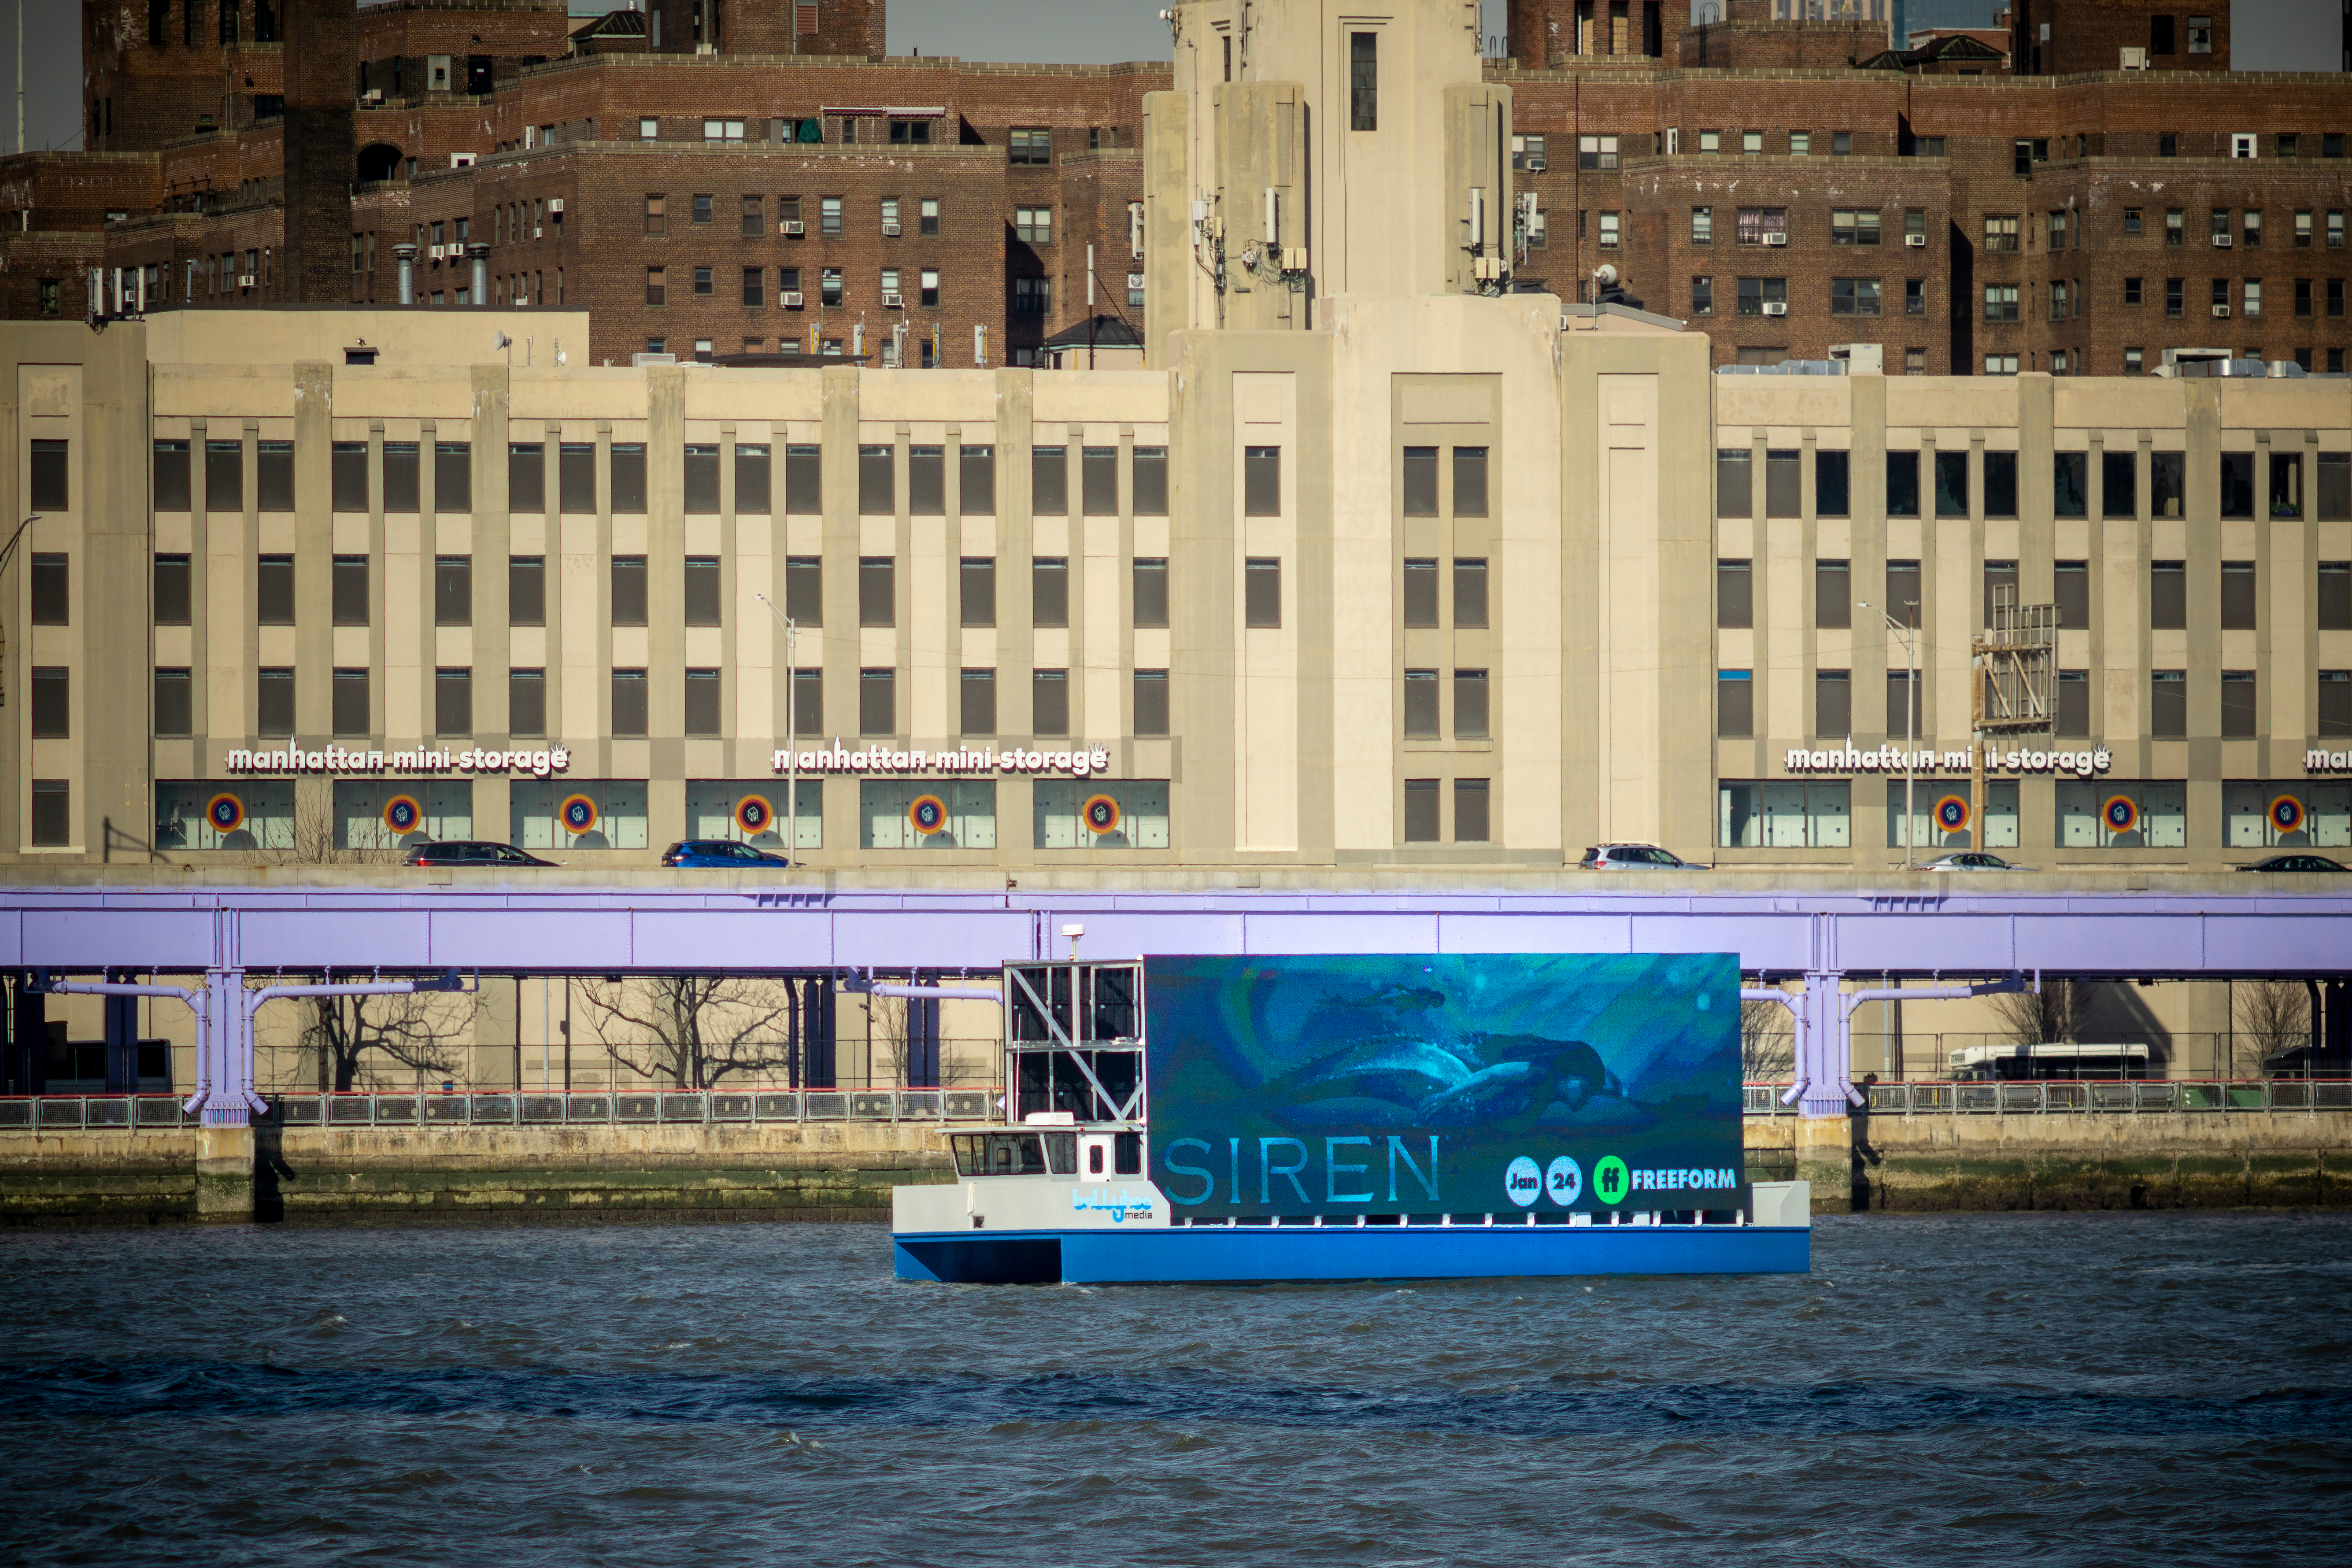 Digital billboards may be banned from NYC waterways under new bill